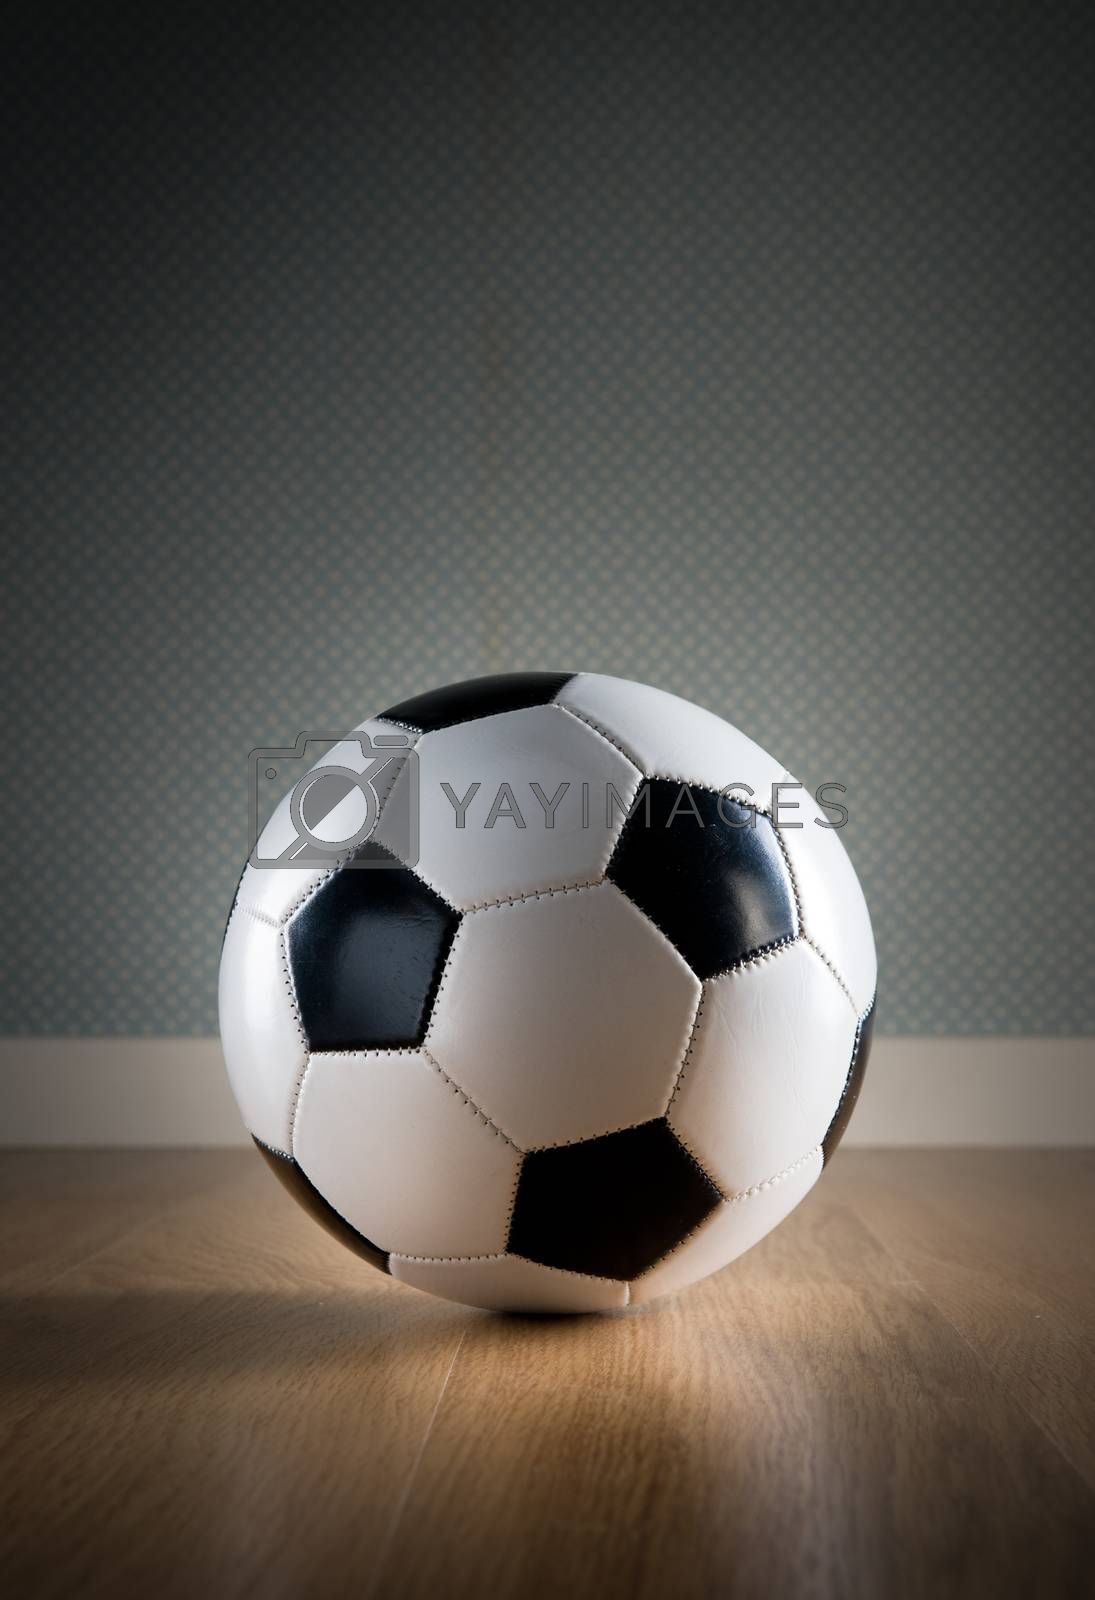 Soccer ball on hardwood floor and vintage wallpaper on background.